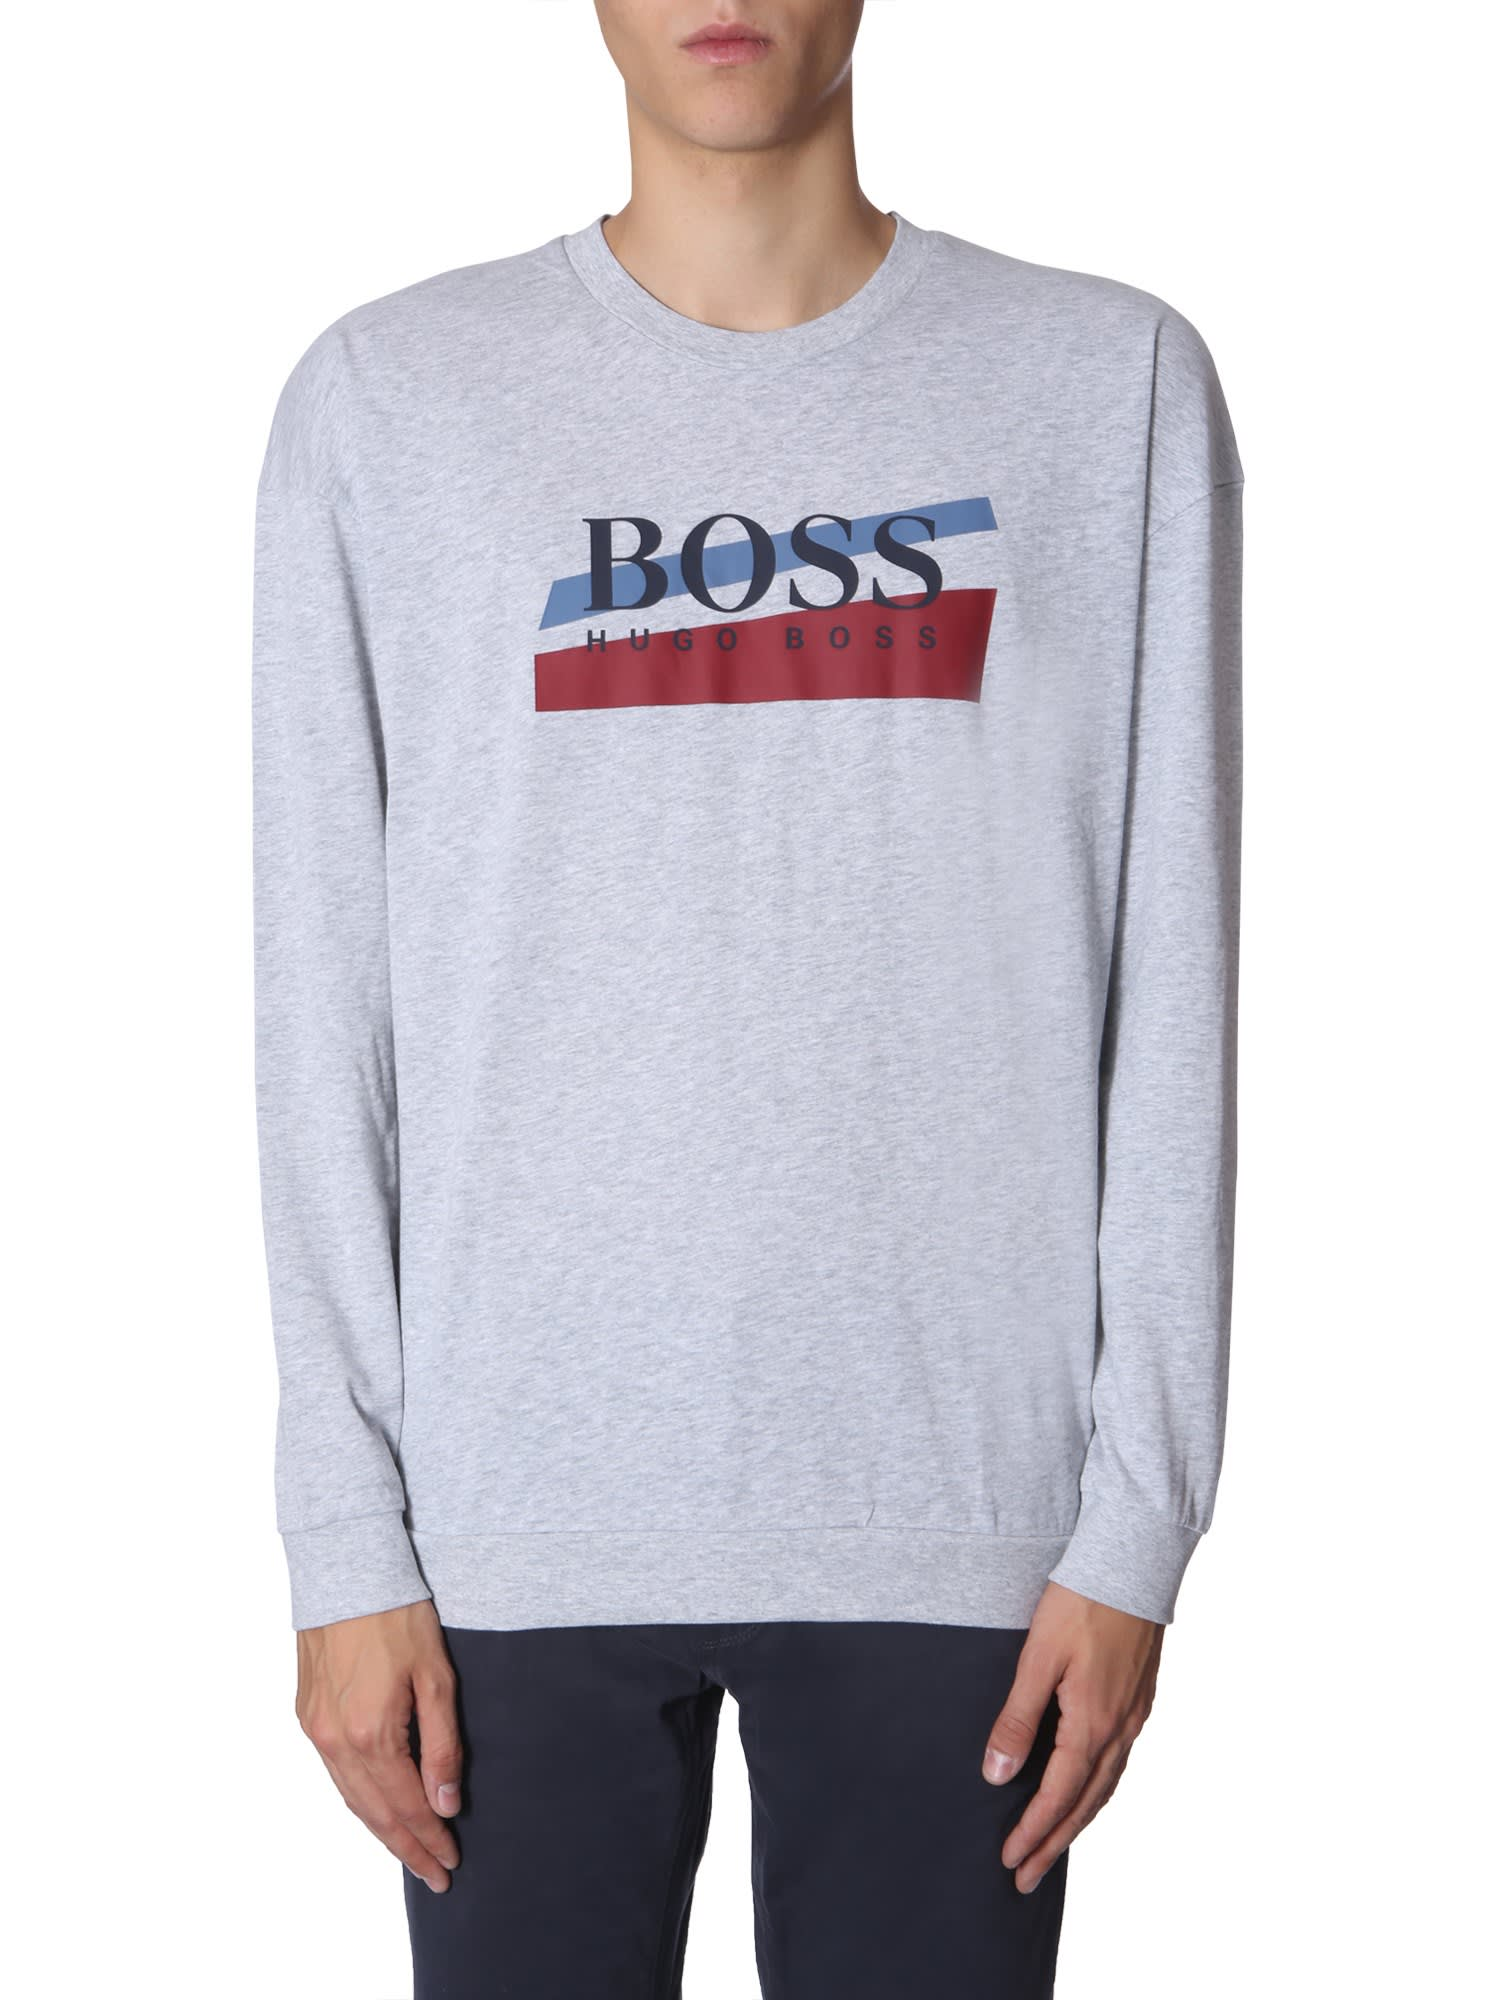 run shoes popular stores clearance sale Hugo Boss Authentic T-shirt